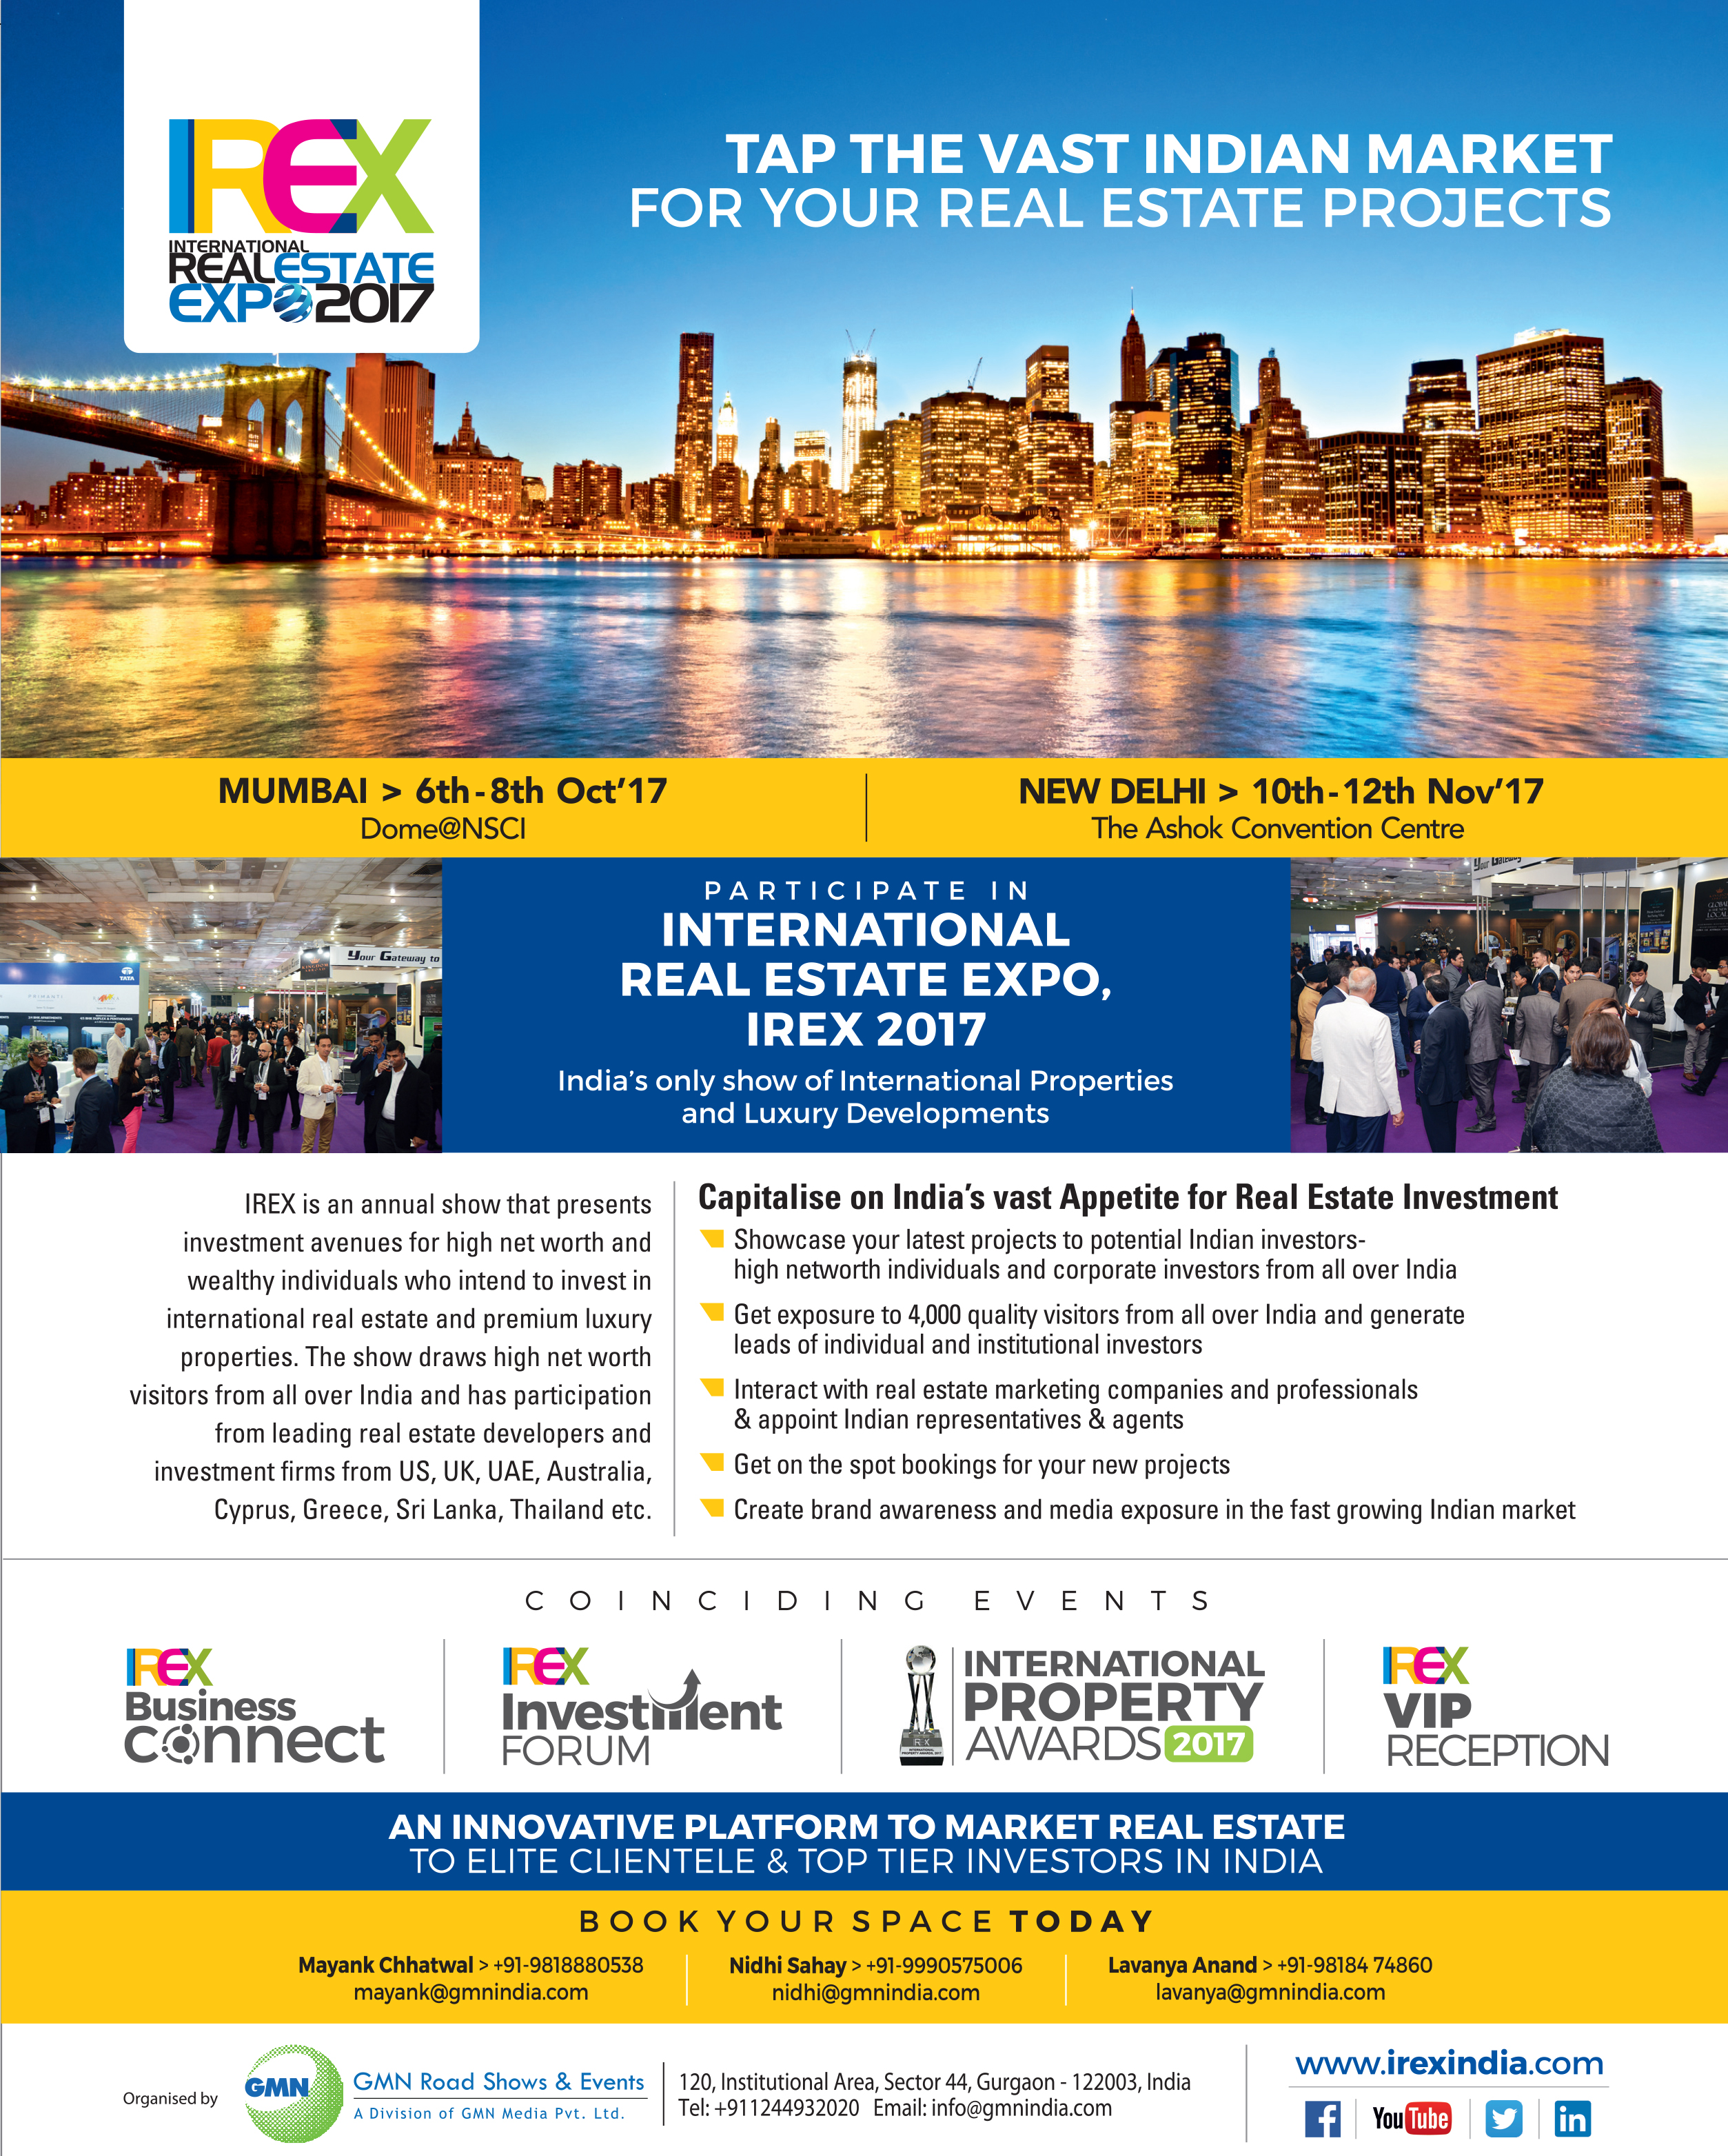 International property magazine - Realty411 Proud Sponsor Of The International Real Estate Expo 2017 Learn More